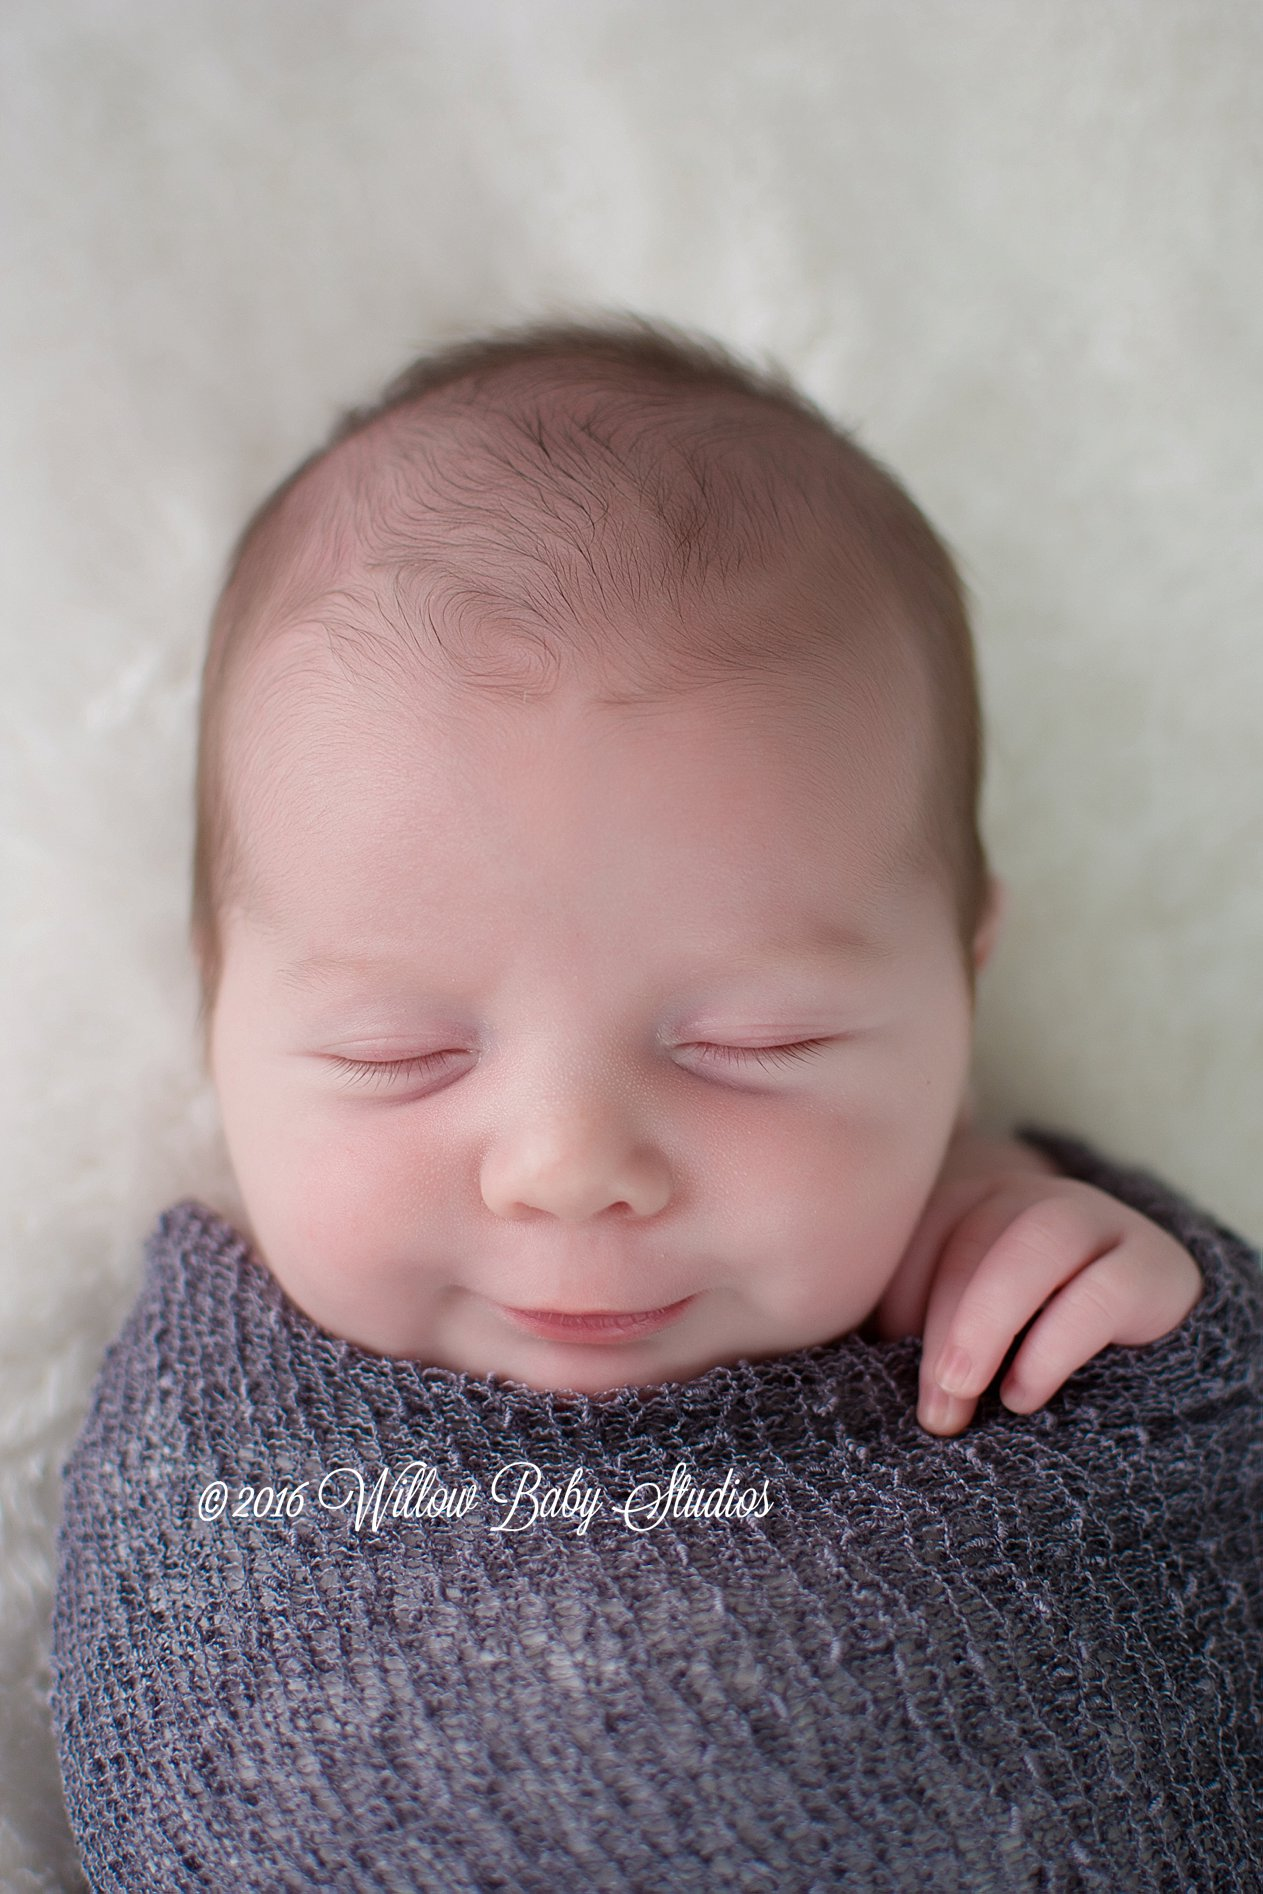 newborn smiling while he sleeps